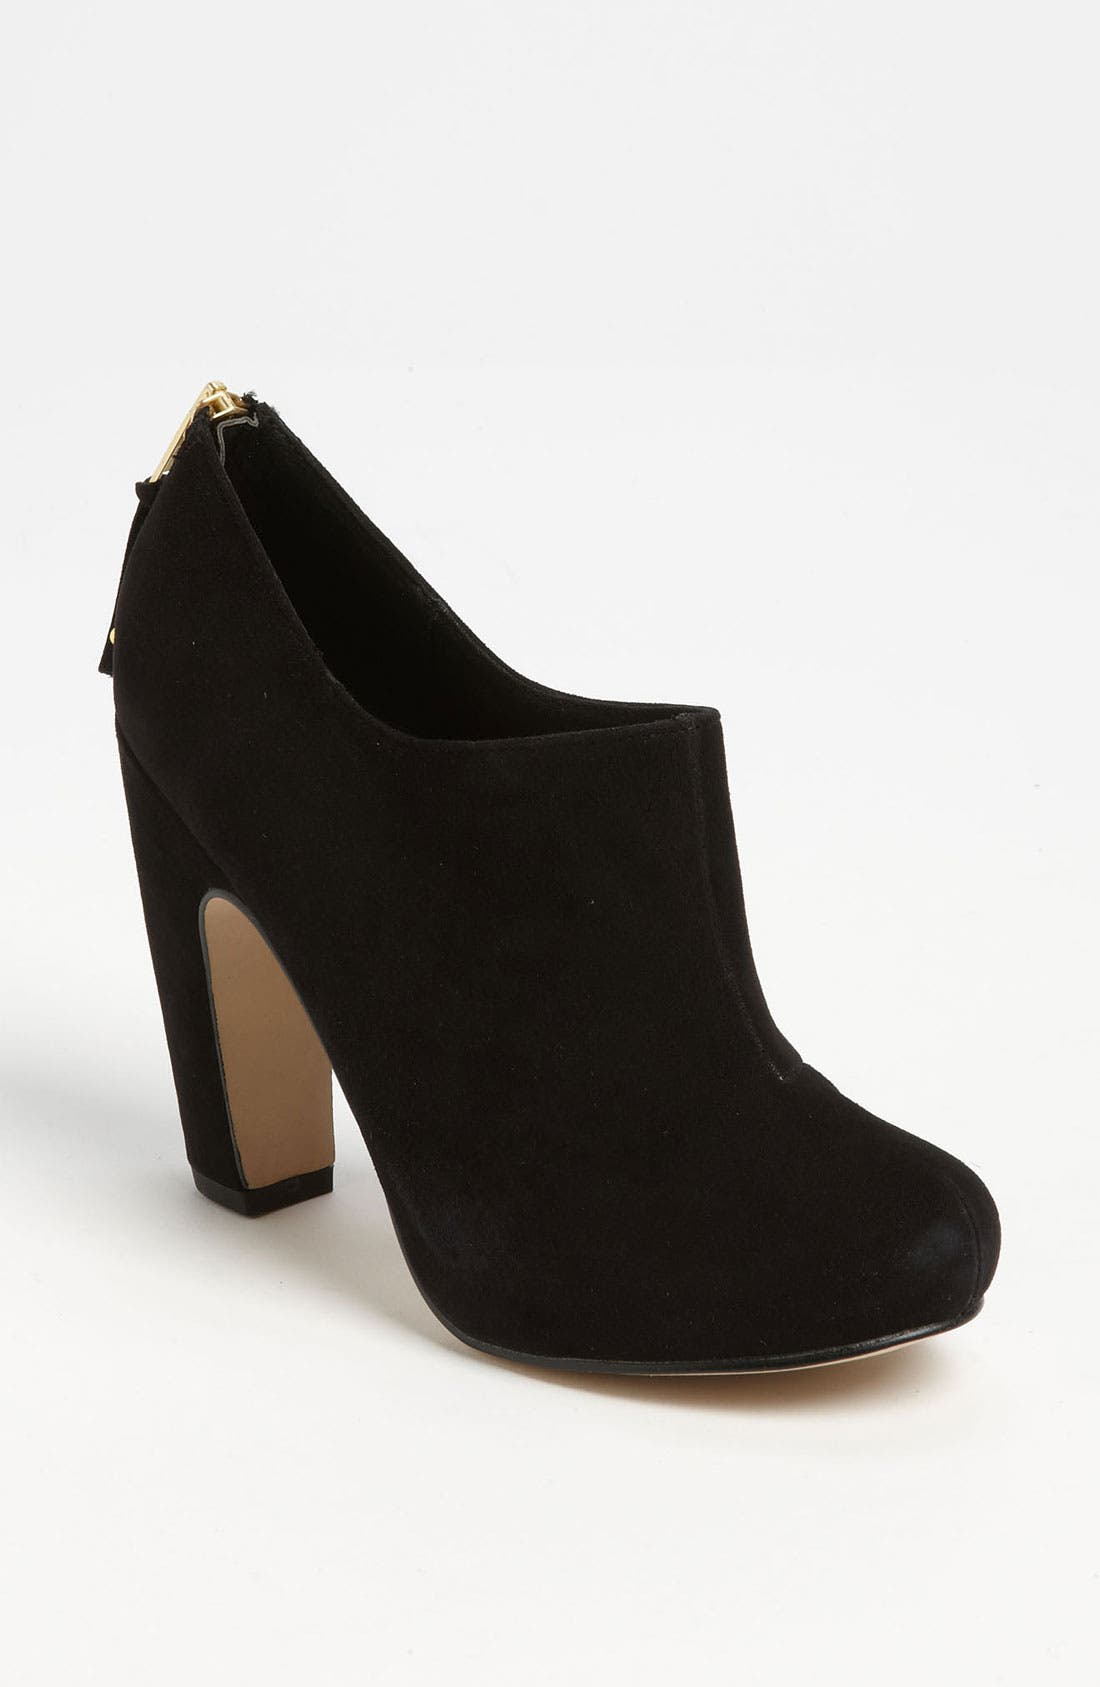 Alternate Image 1 Selected - Topshop 'Graphic' Arc Heel Ankle Boot